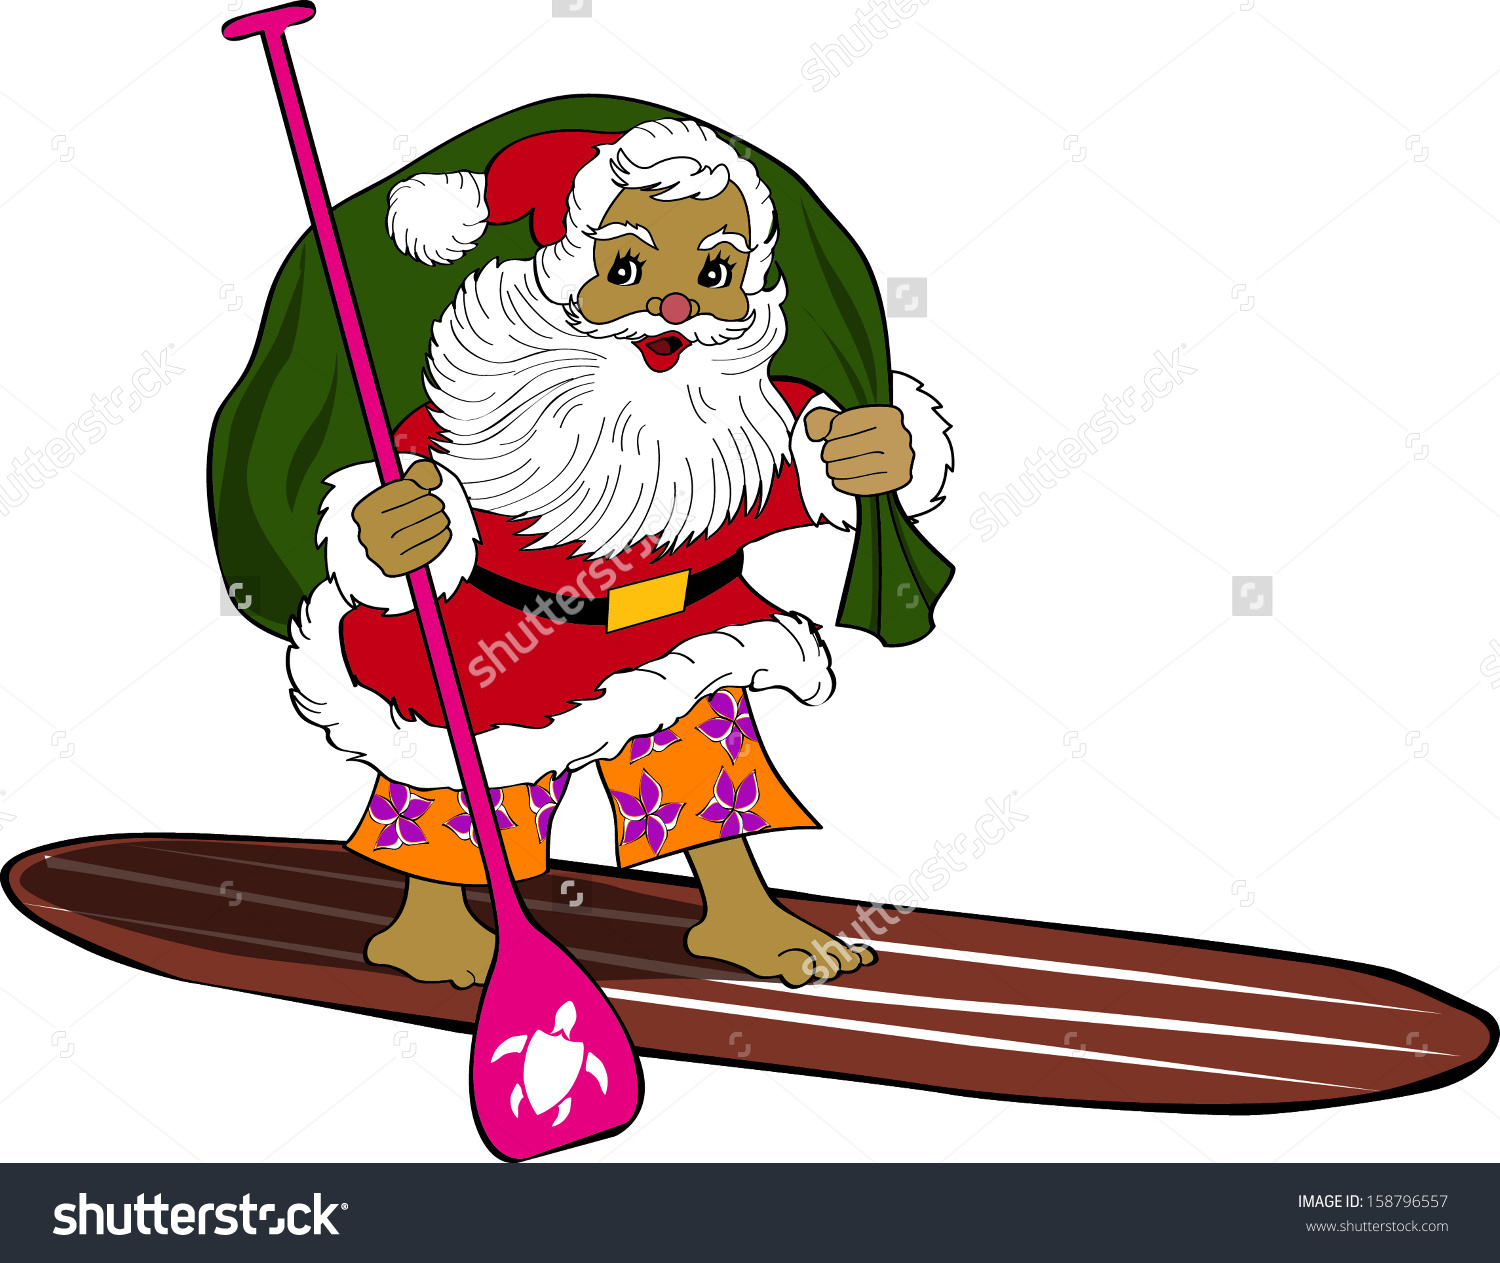 Santa surfboard clipart clip black and white library Retro Tropical Christmas Surfing Santa On Standup Paddleboard ... clip black and white library